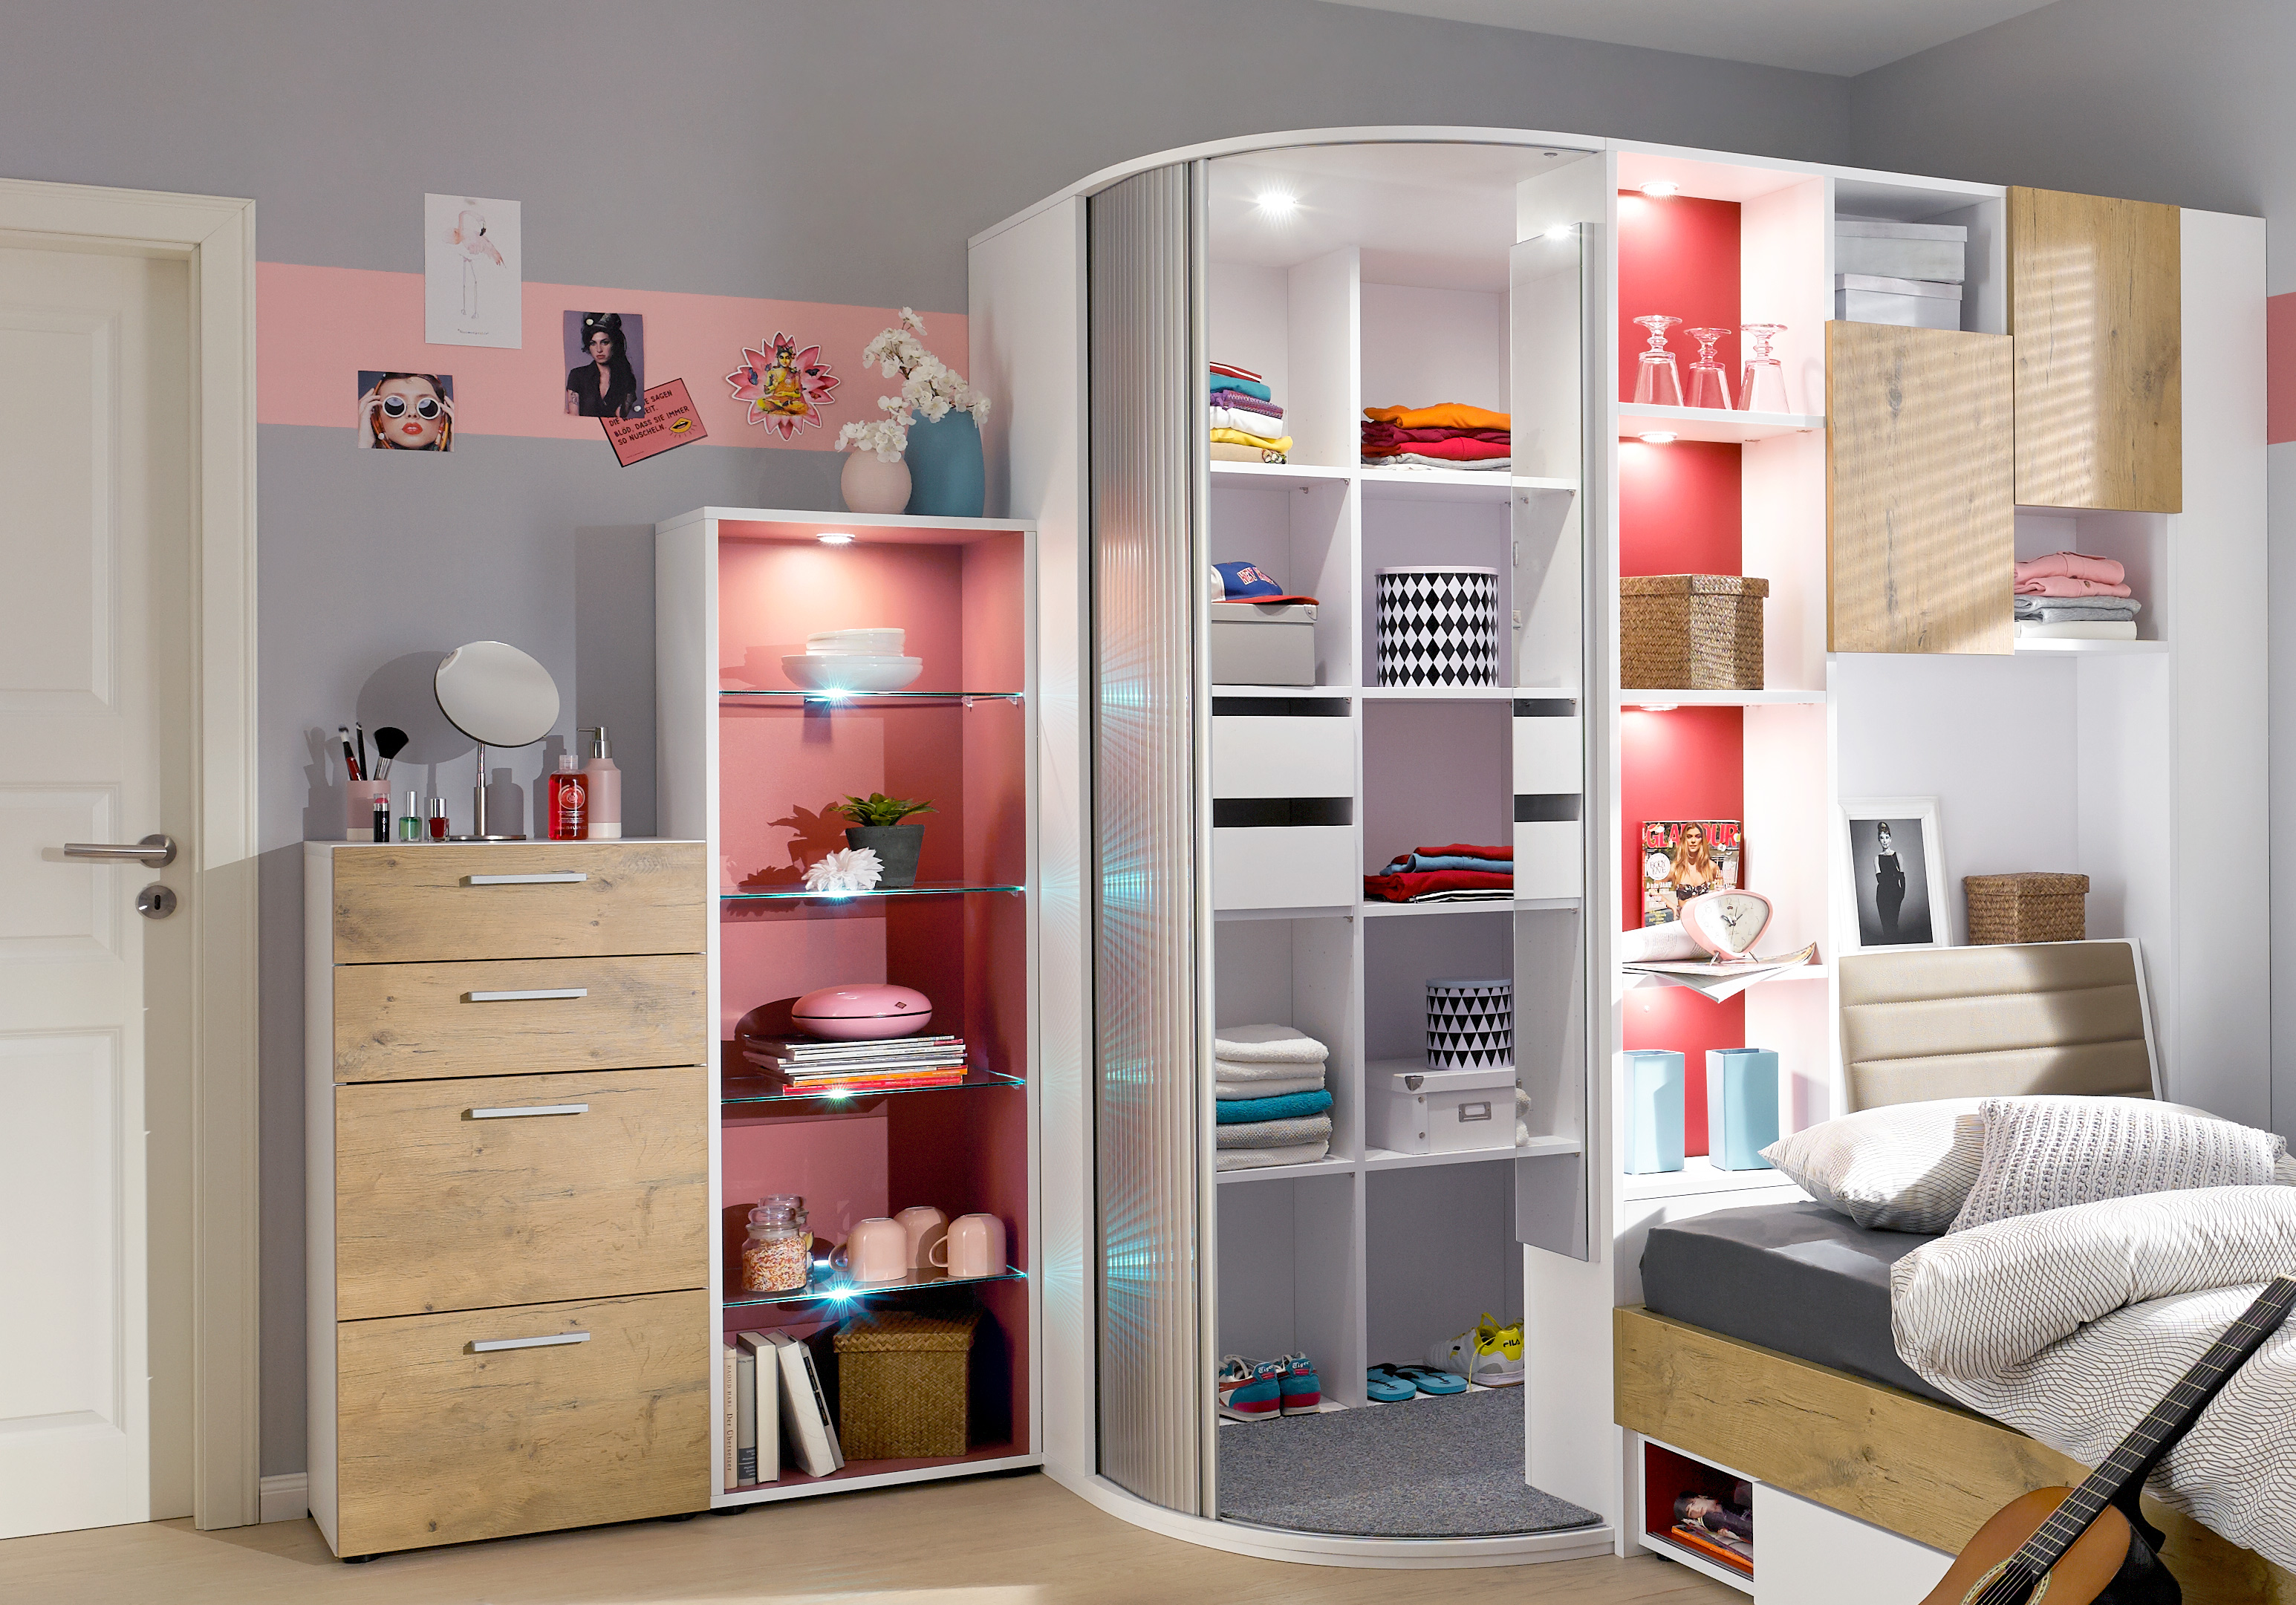 jugendzimmer von rudolf high 5 eckschrank liege. Black Bedroom Furniture Sets. Home Design Ideas